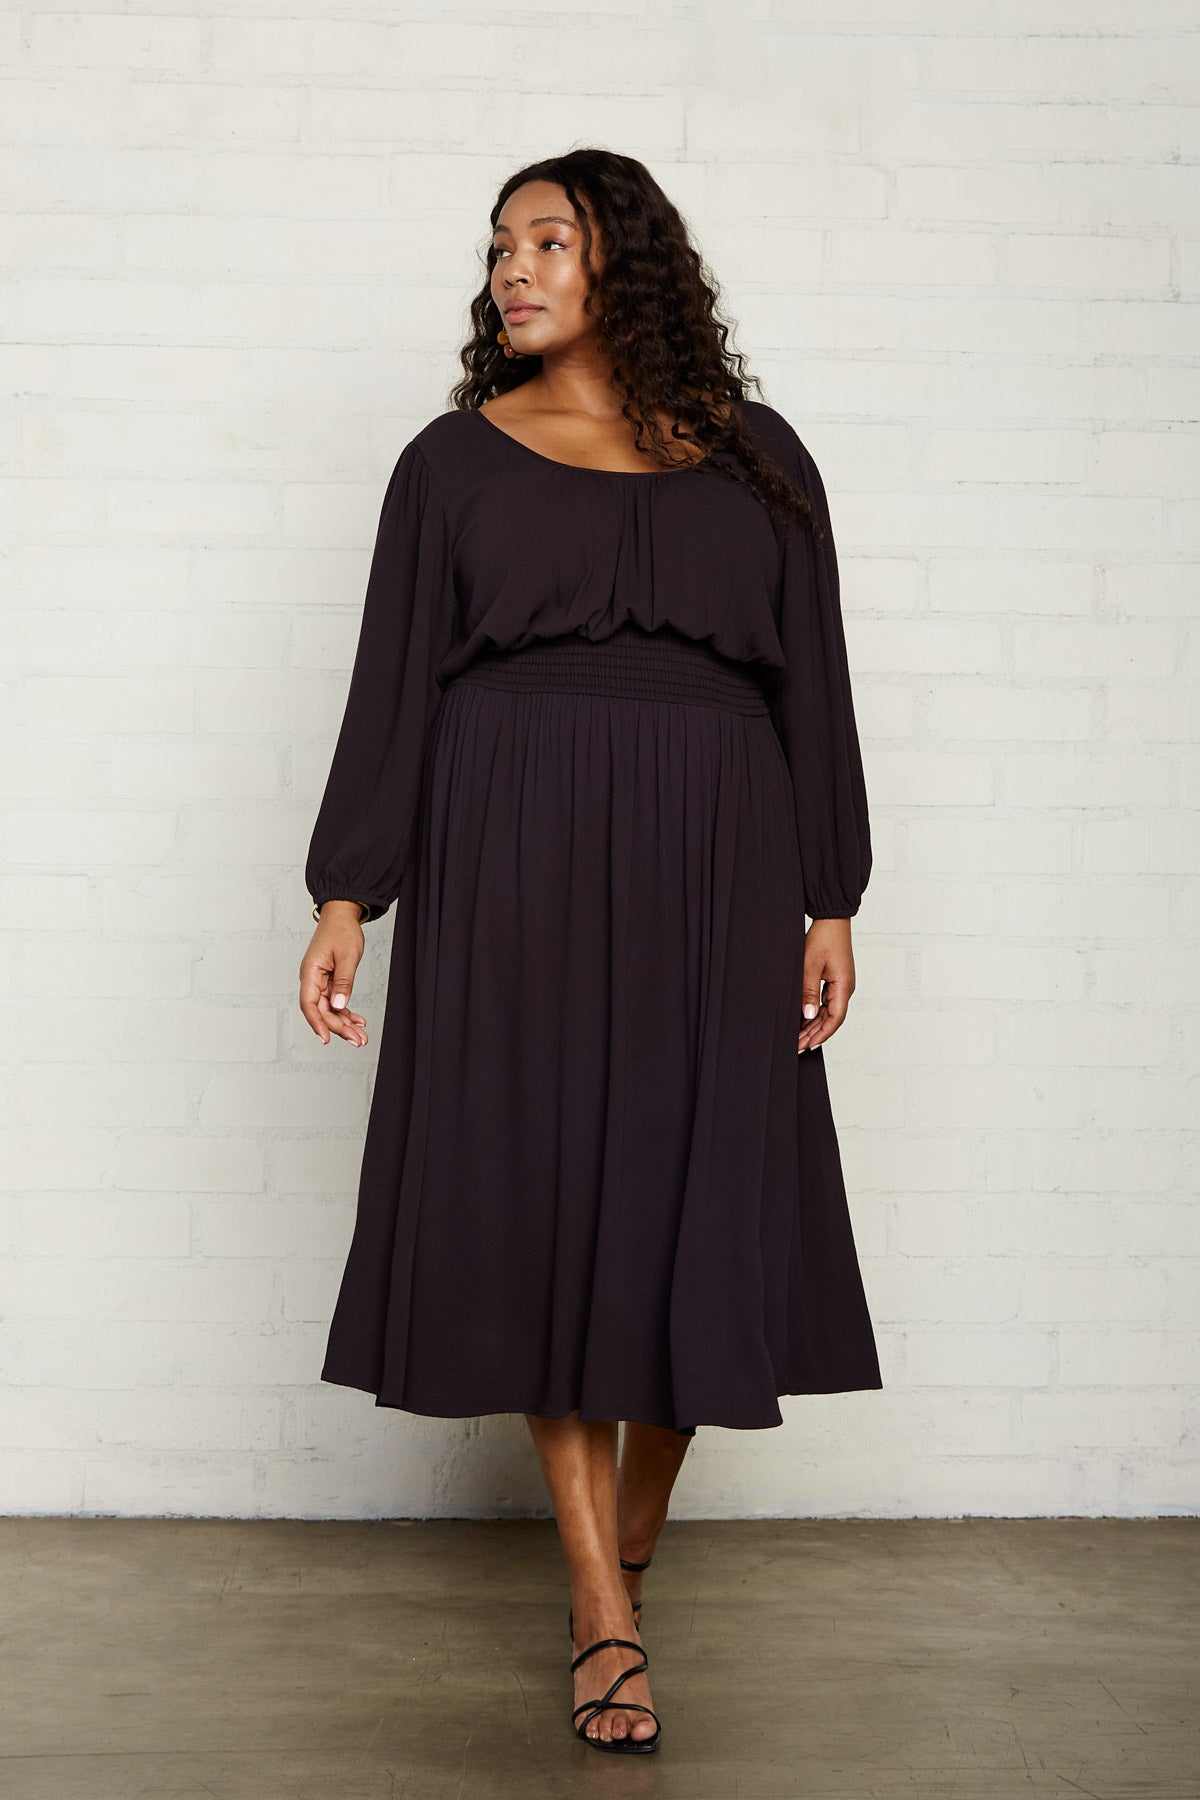 Pucker Rayon Edith Dress - Faded Black, Plus Size